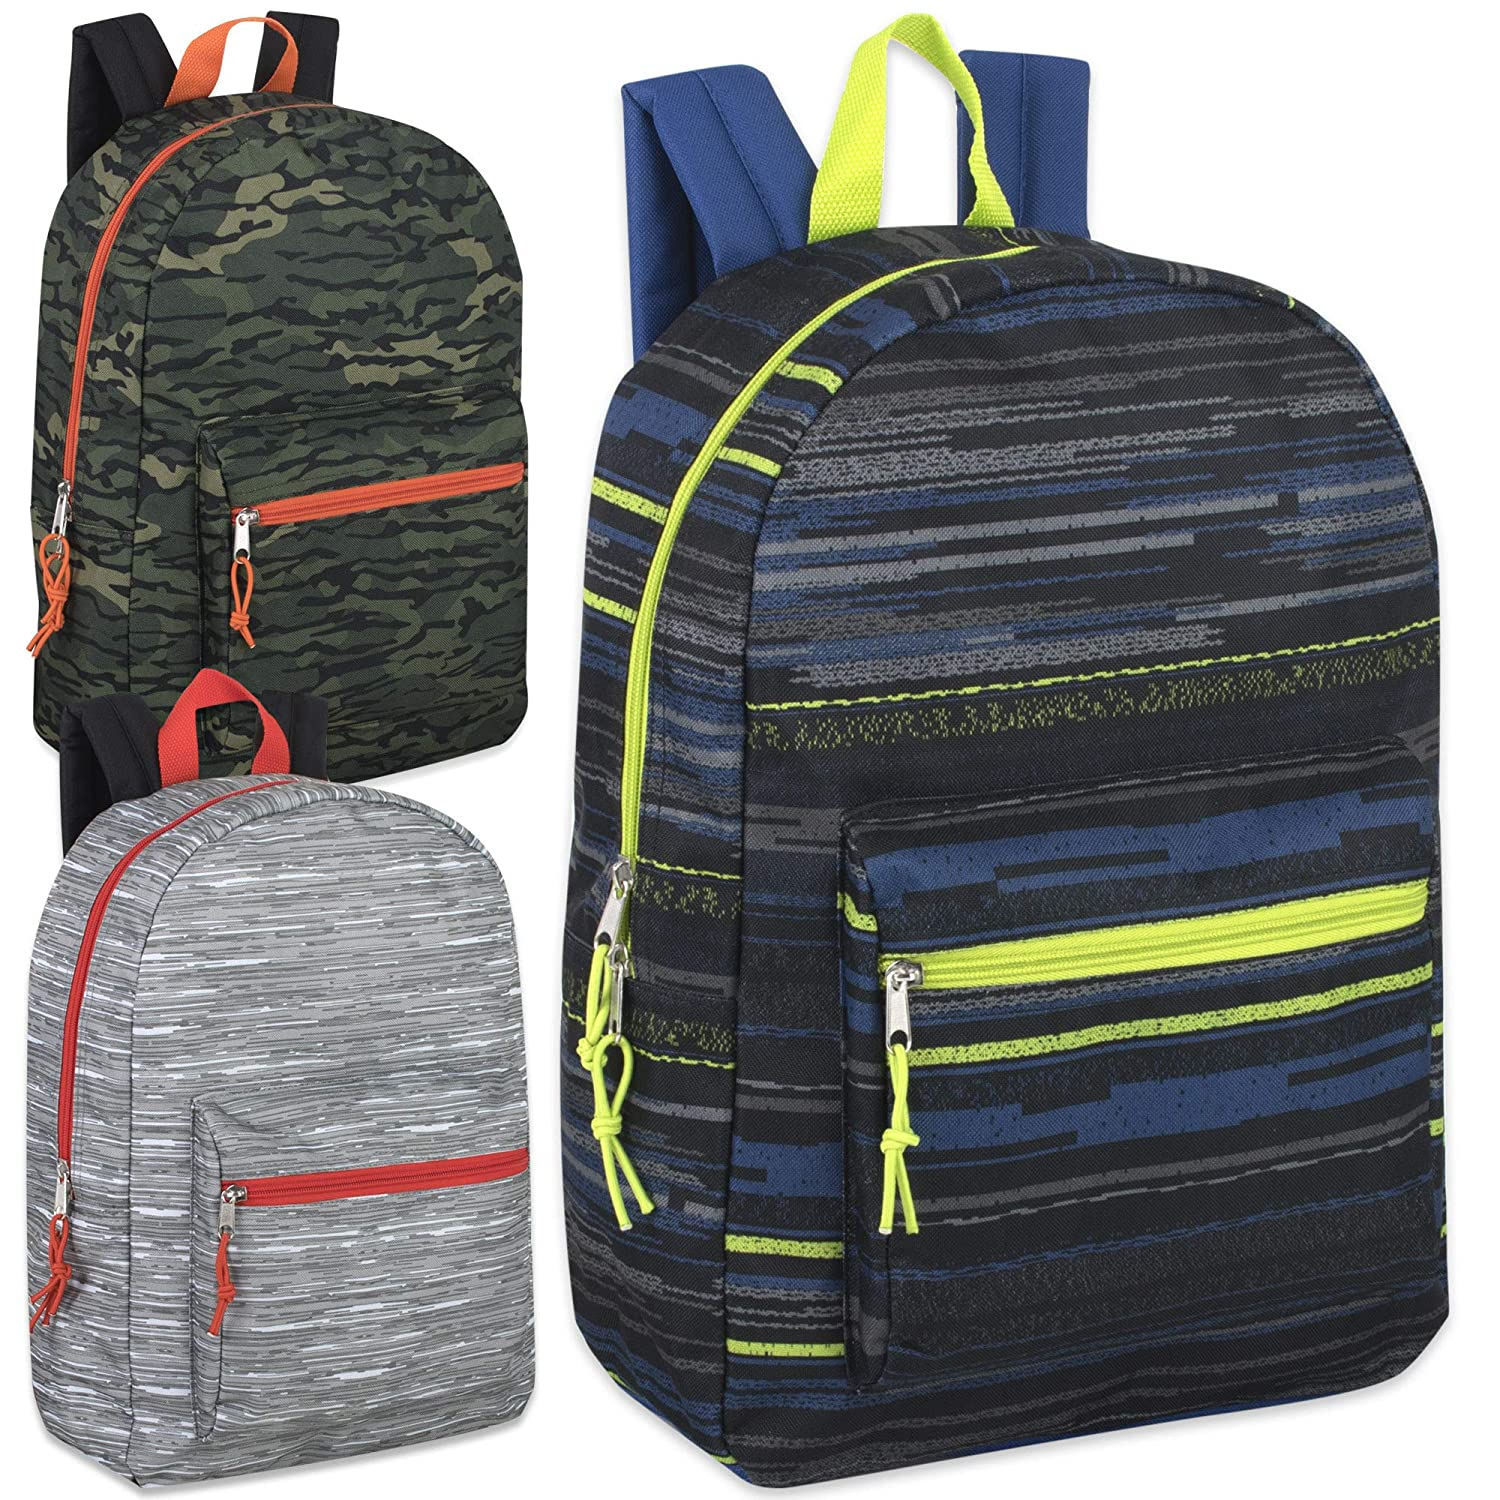 Hiking Camping Camouflage Travel Trailmaker Boys Printed 17 Inch Backpack with Pencil Pouch for School